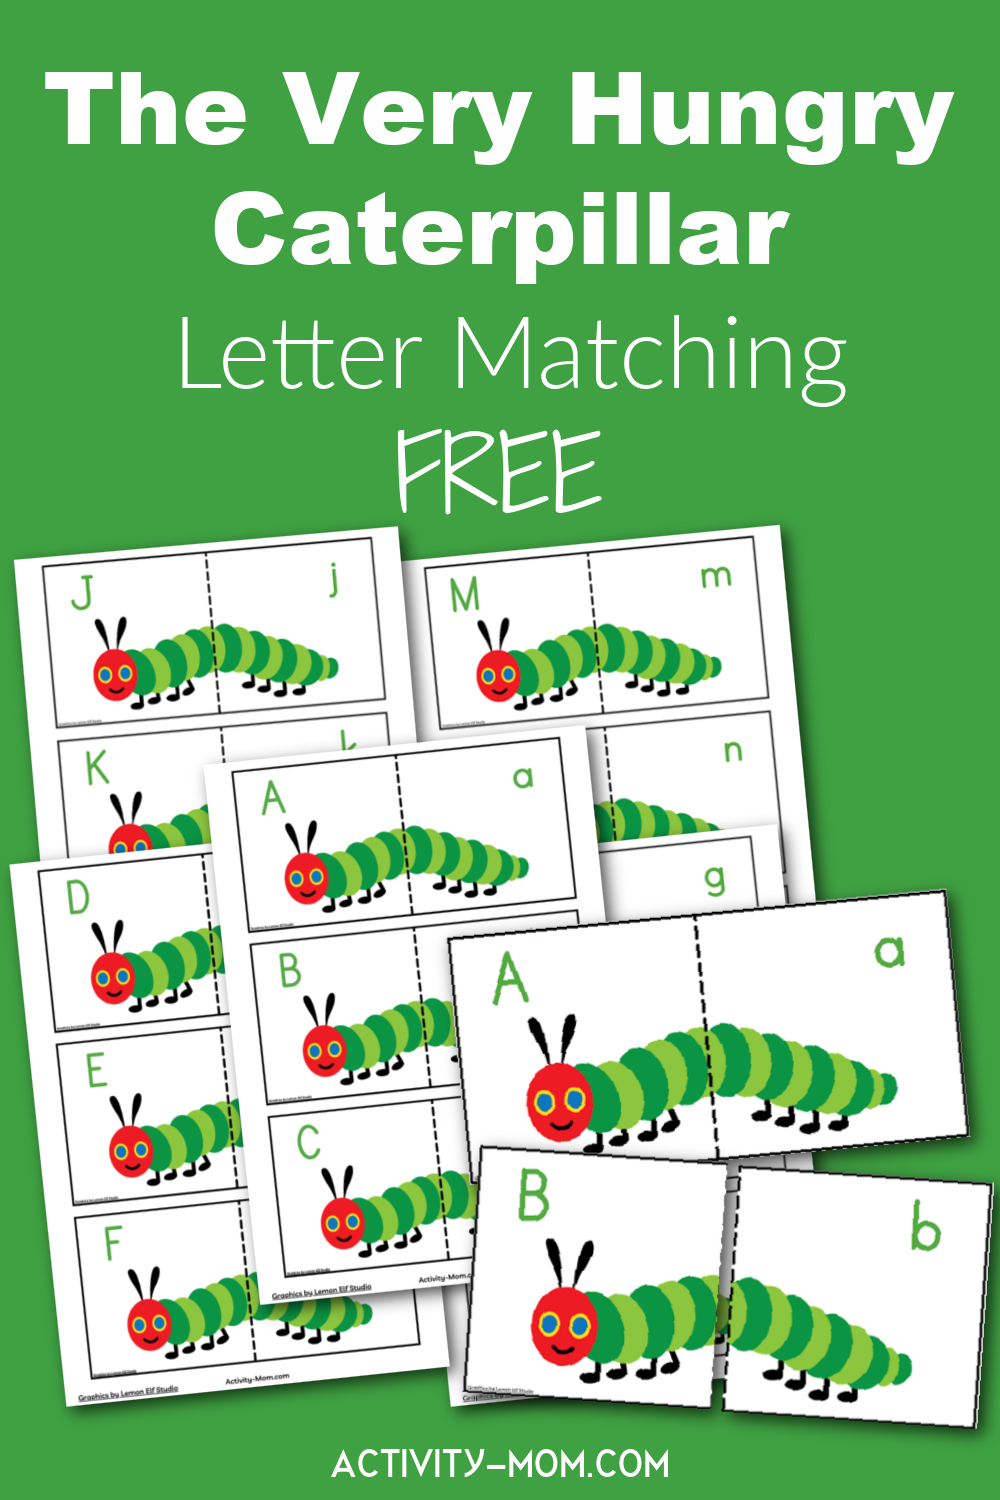 Very Hungry Caterpillar Letter Matching